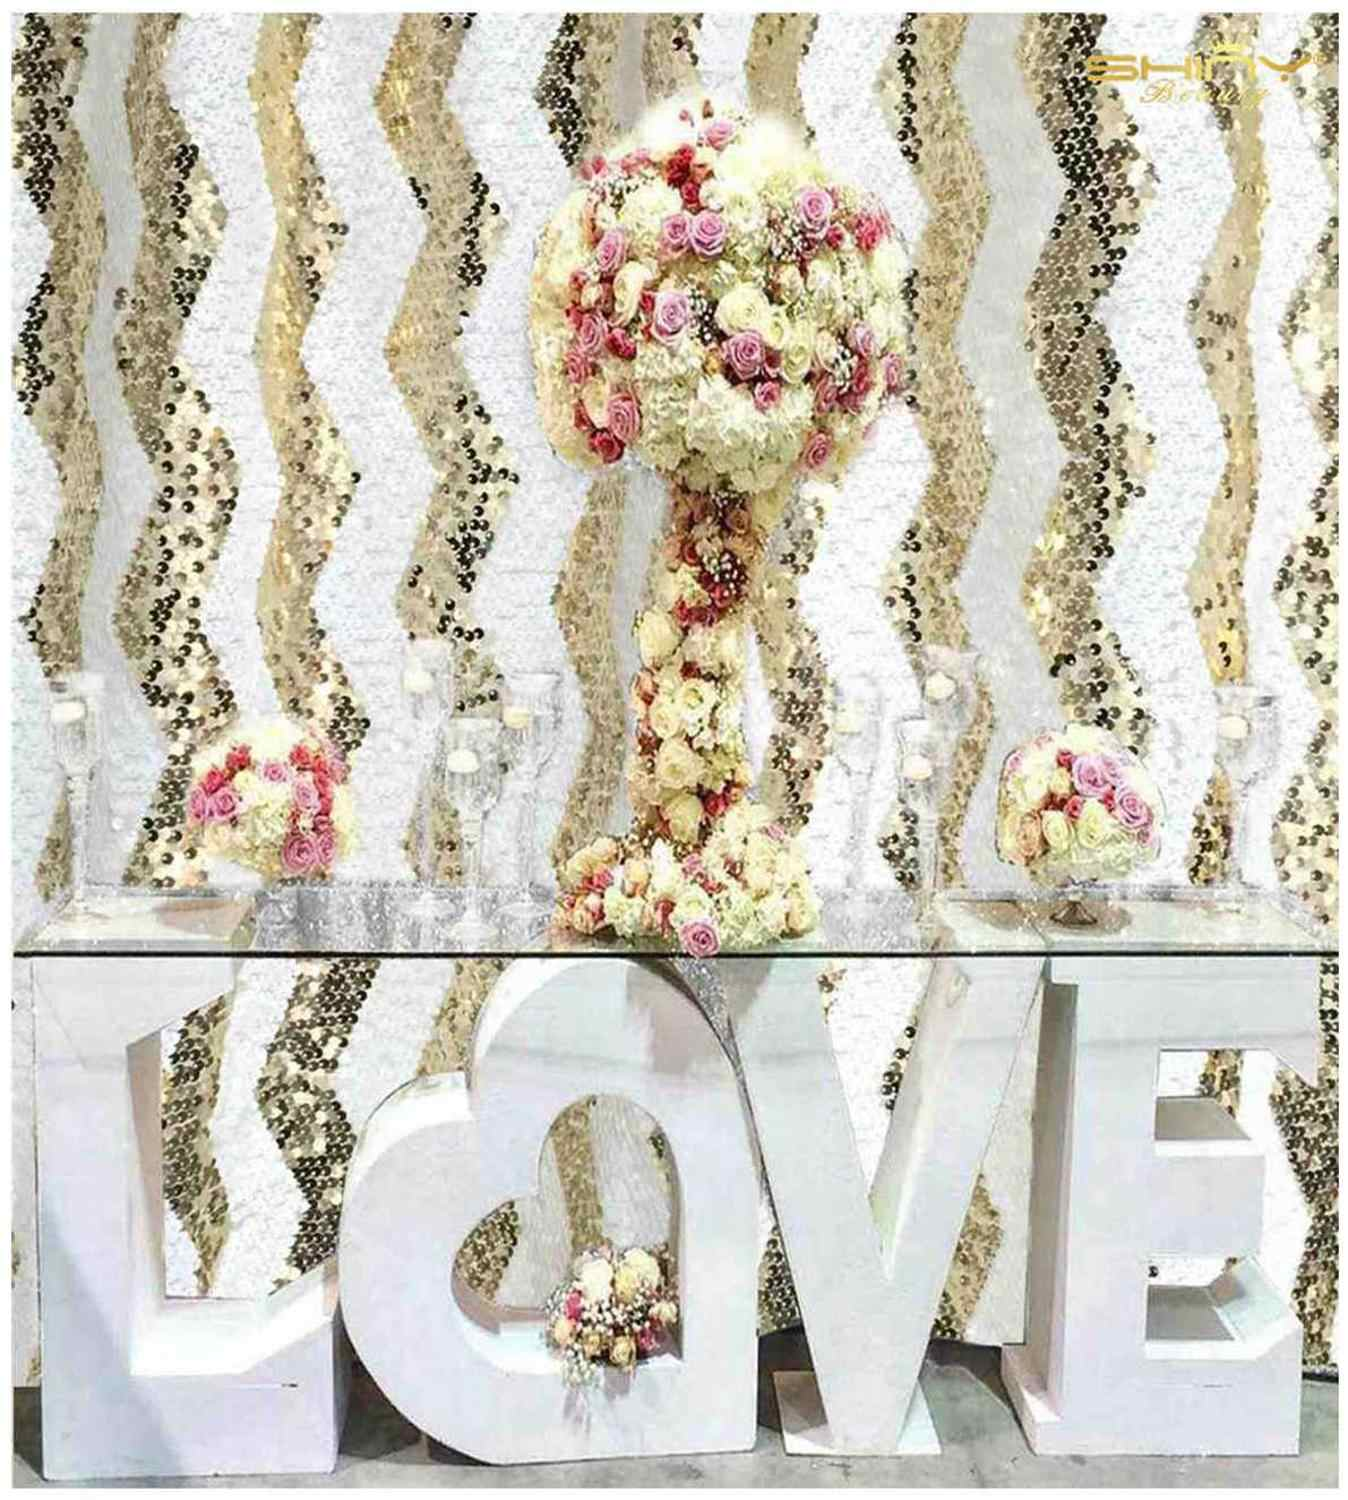 Shinybeauty photo booth pano de fundo ouro chevron casamento brilho cortinas festa Backdrops-M190727